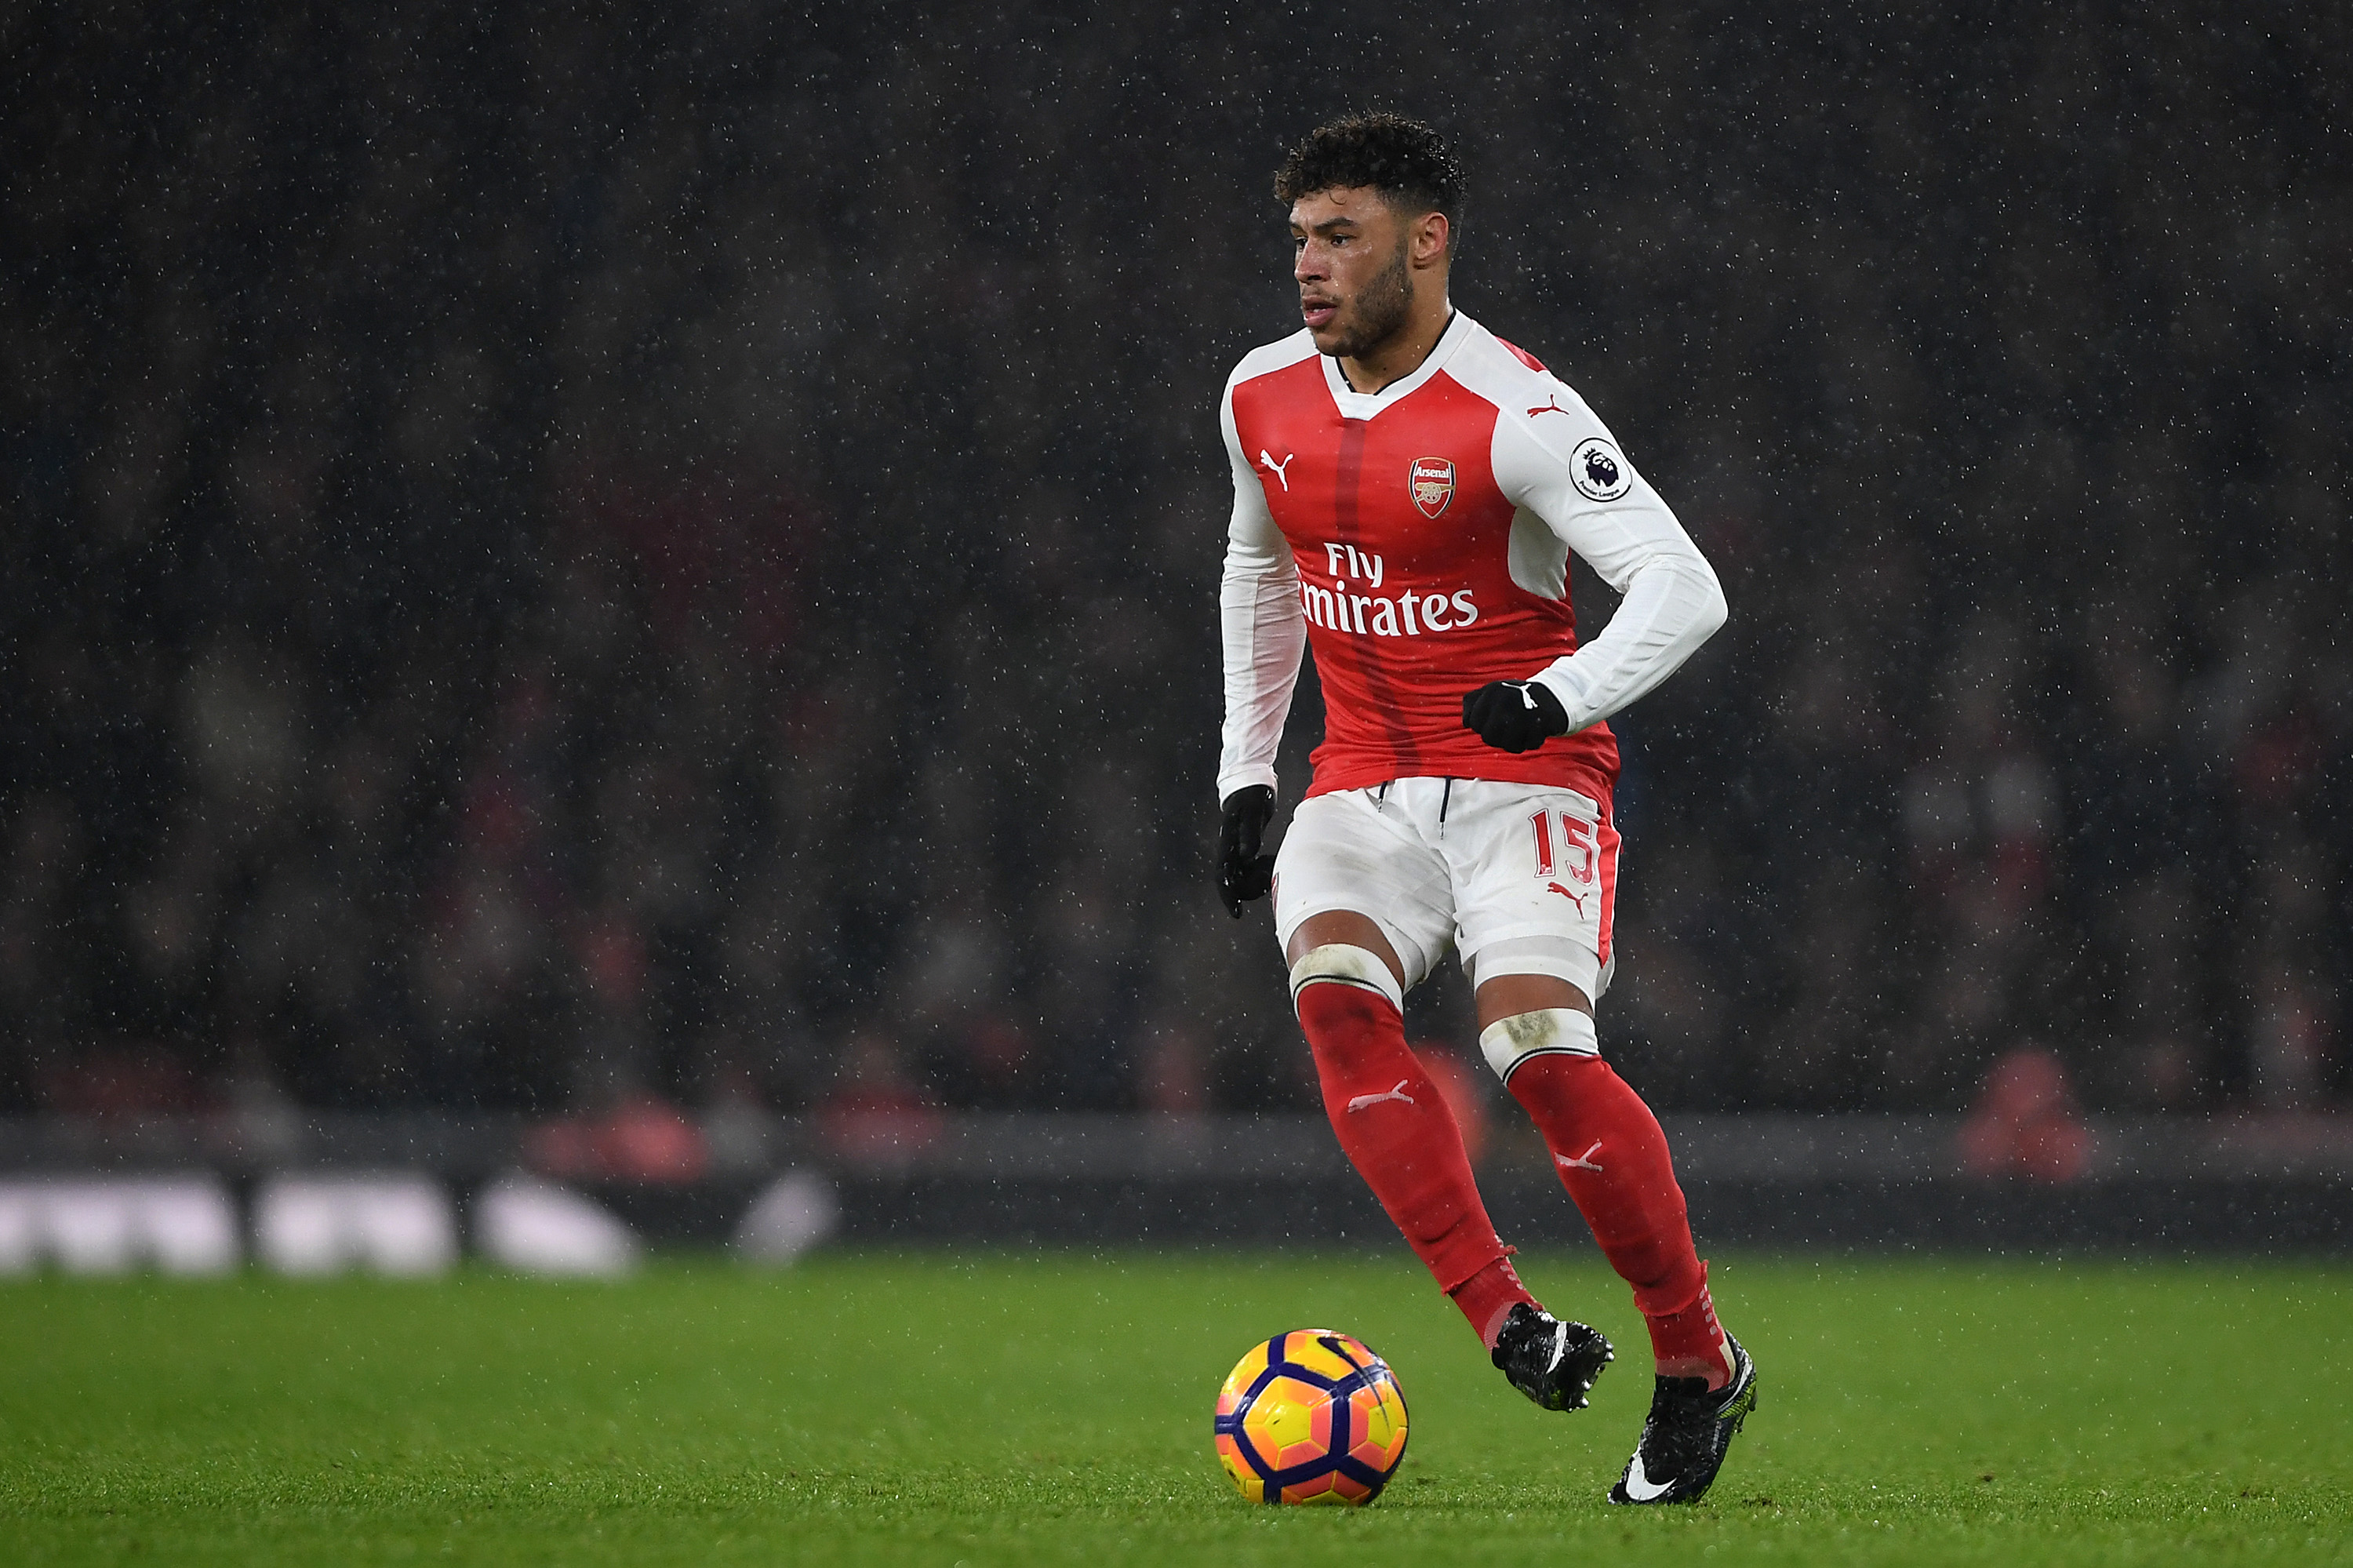 Arsenal Vs Chelsea: 5 Key Players To Watch